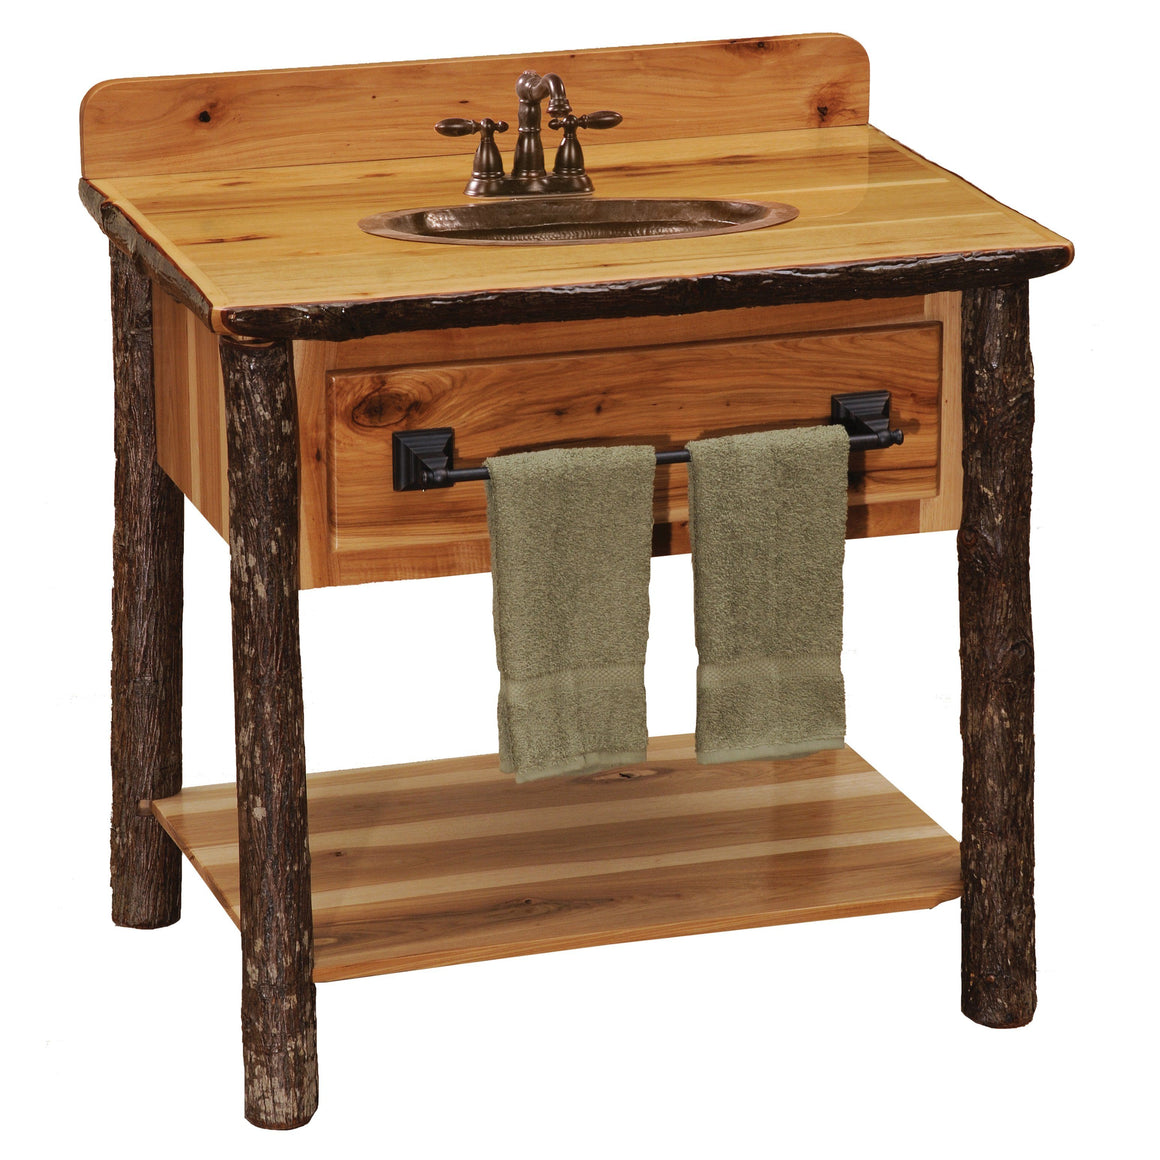 Hickory Log Freestanding Open Vanity with Shelf - without Top - Rustic Deco Incorporated